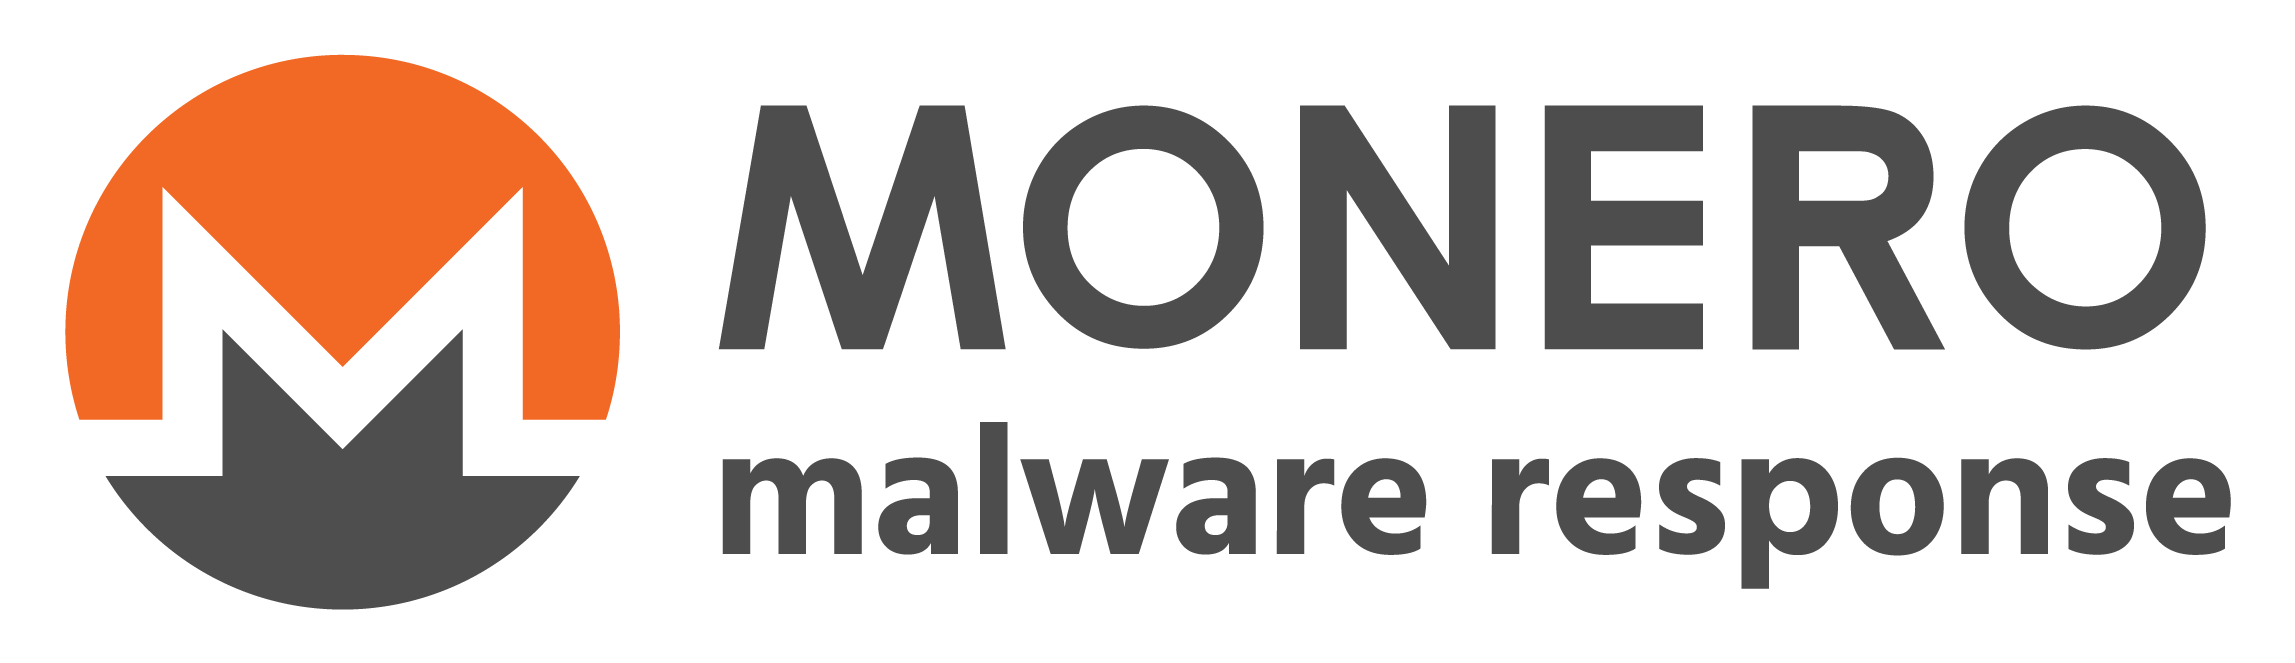 Monero Malware Response Workgroup Logo